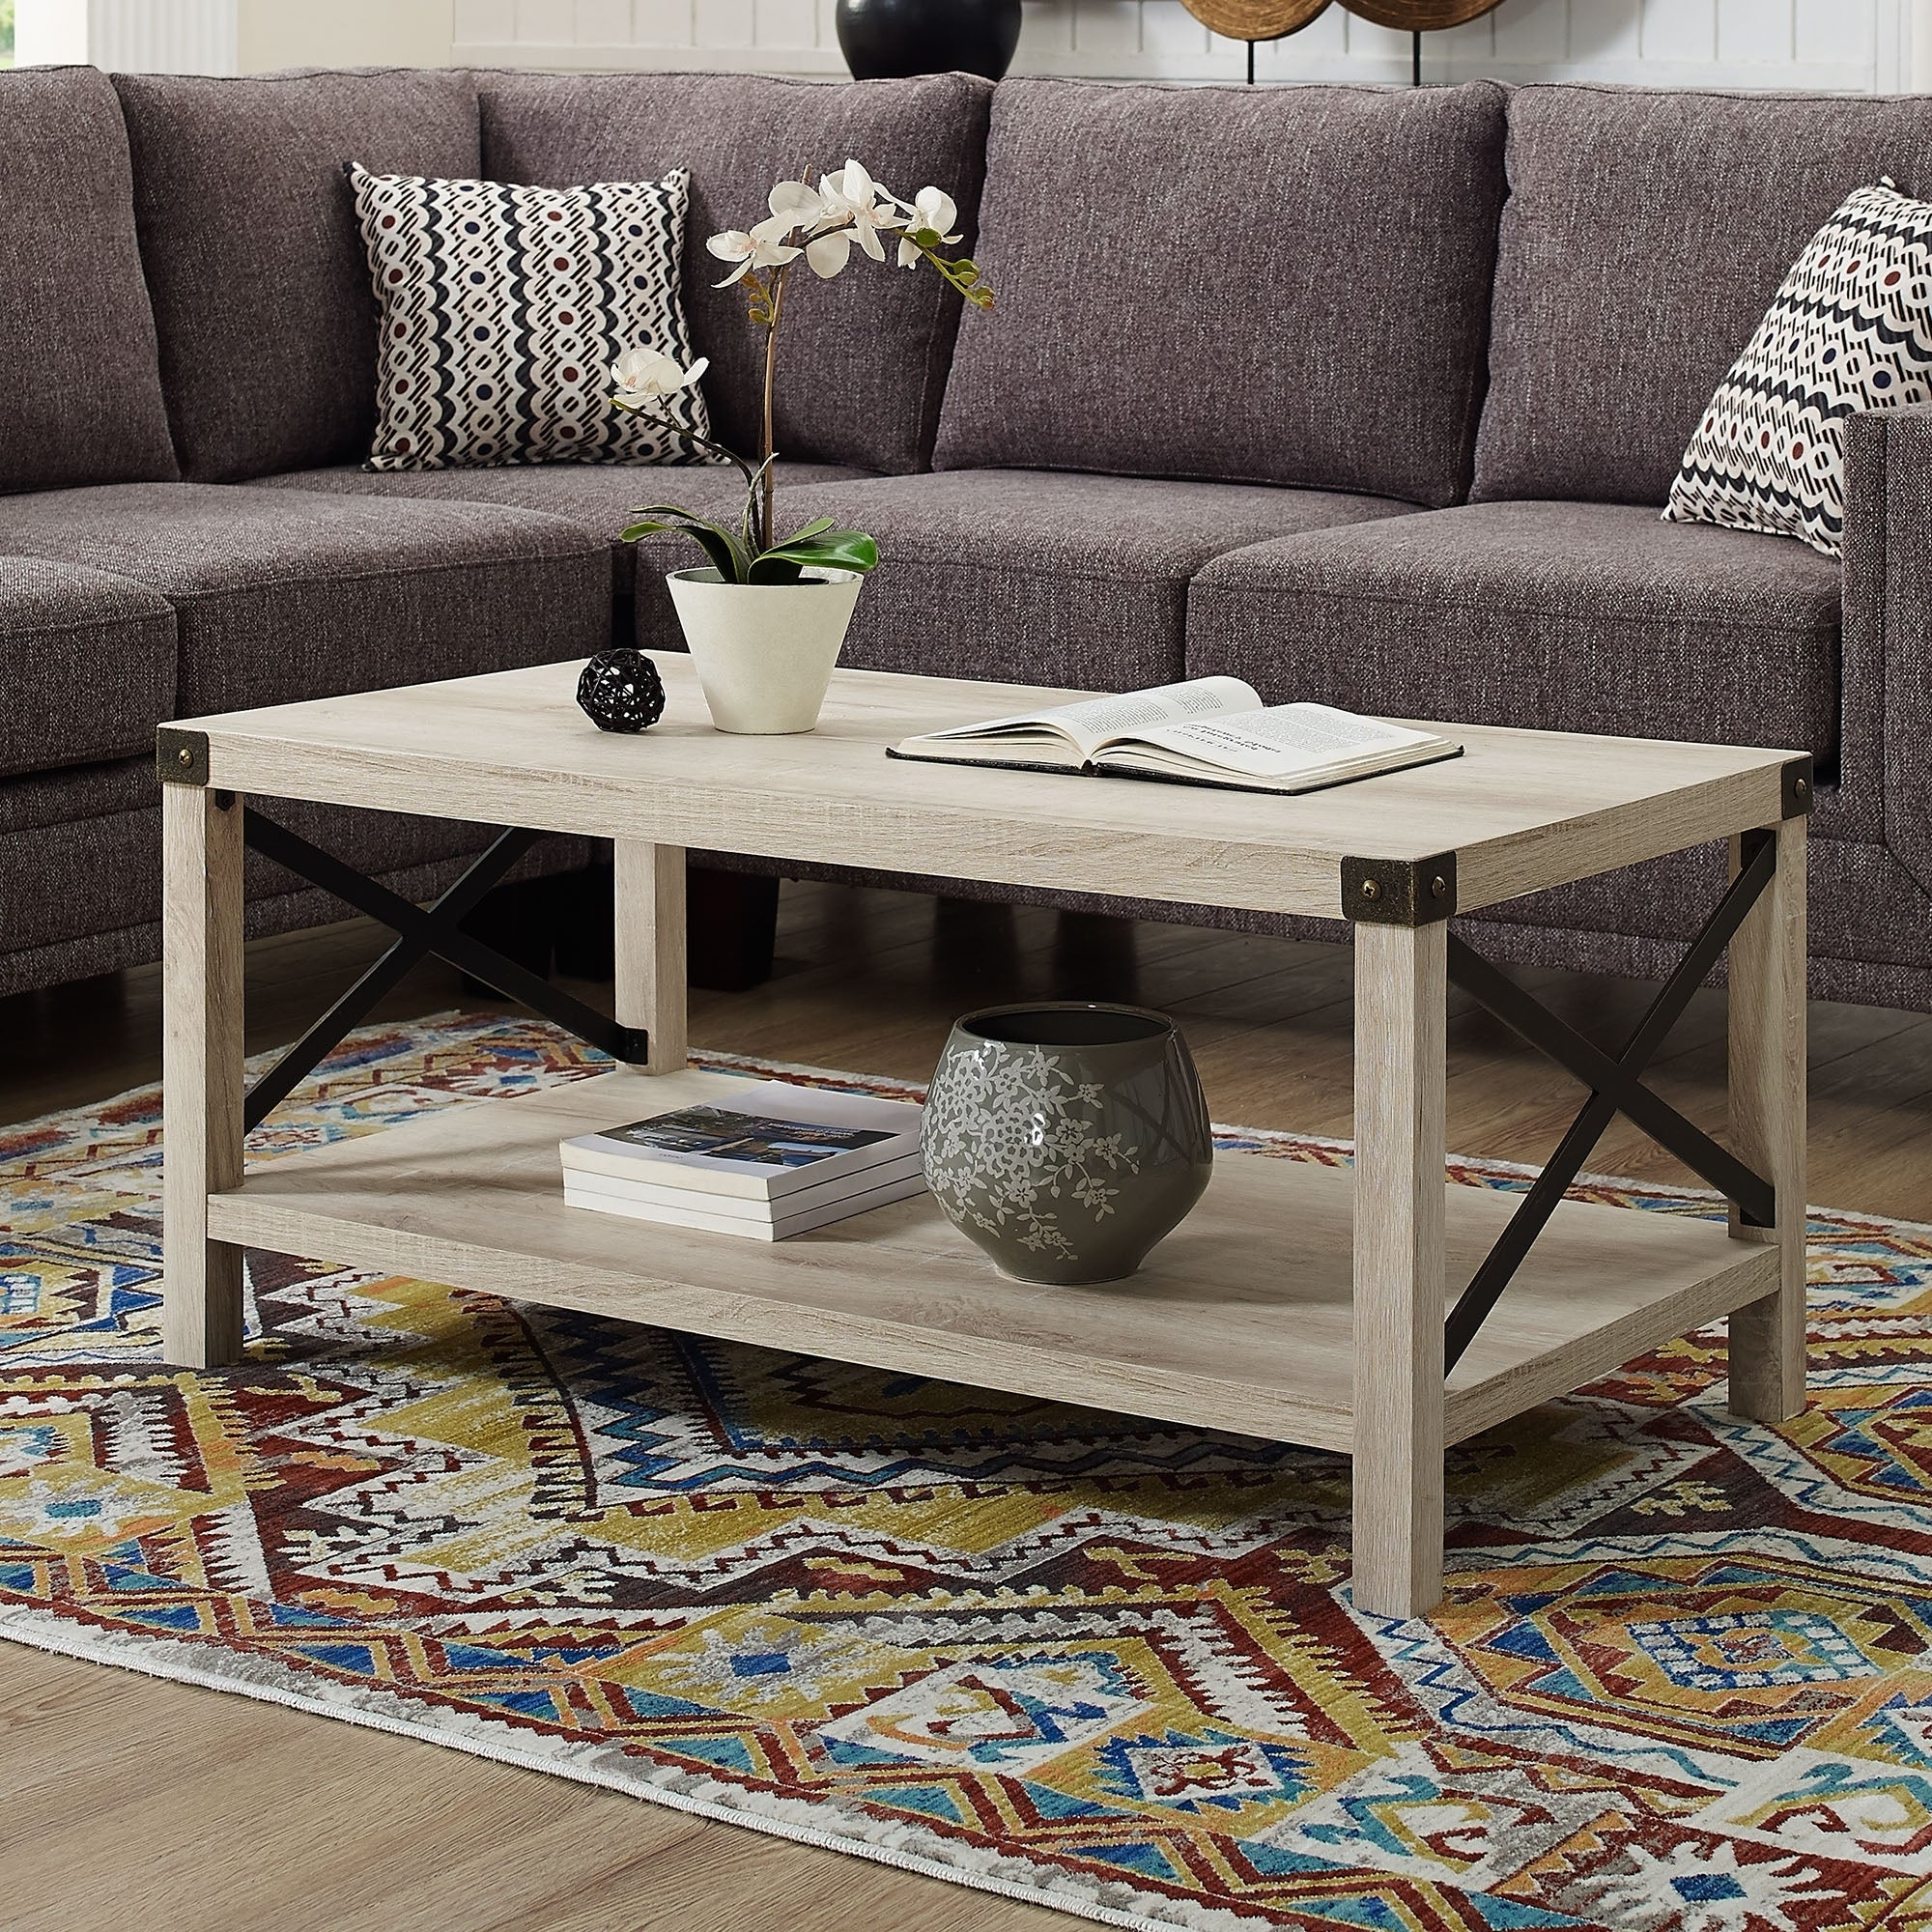 The Gray Barn Kujawa Metal X Coffee Table – 40 X 22 X 18h Pertaining To Most Current The Gray Barn Kujawa Metal X Coffee Tables – 40 X 22 X 18h (View 7 of 20)